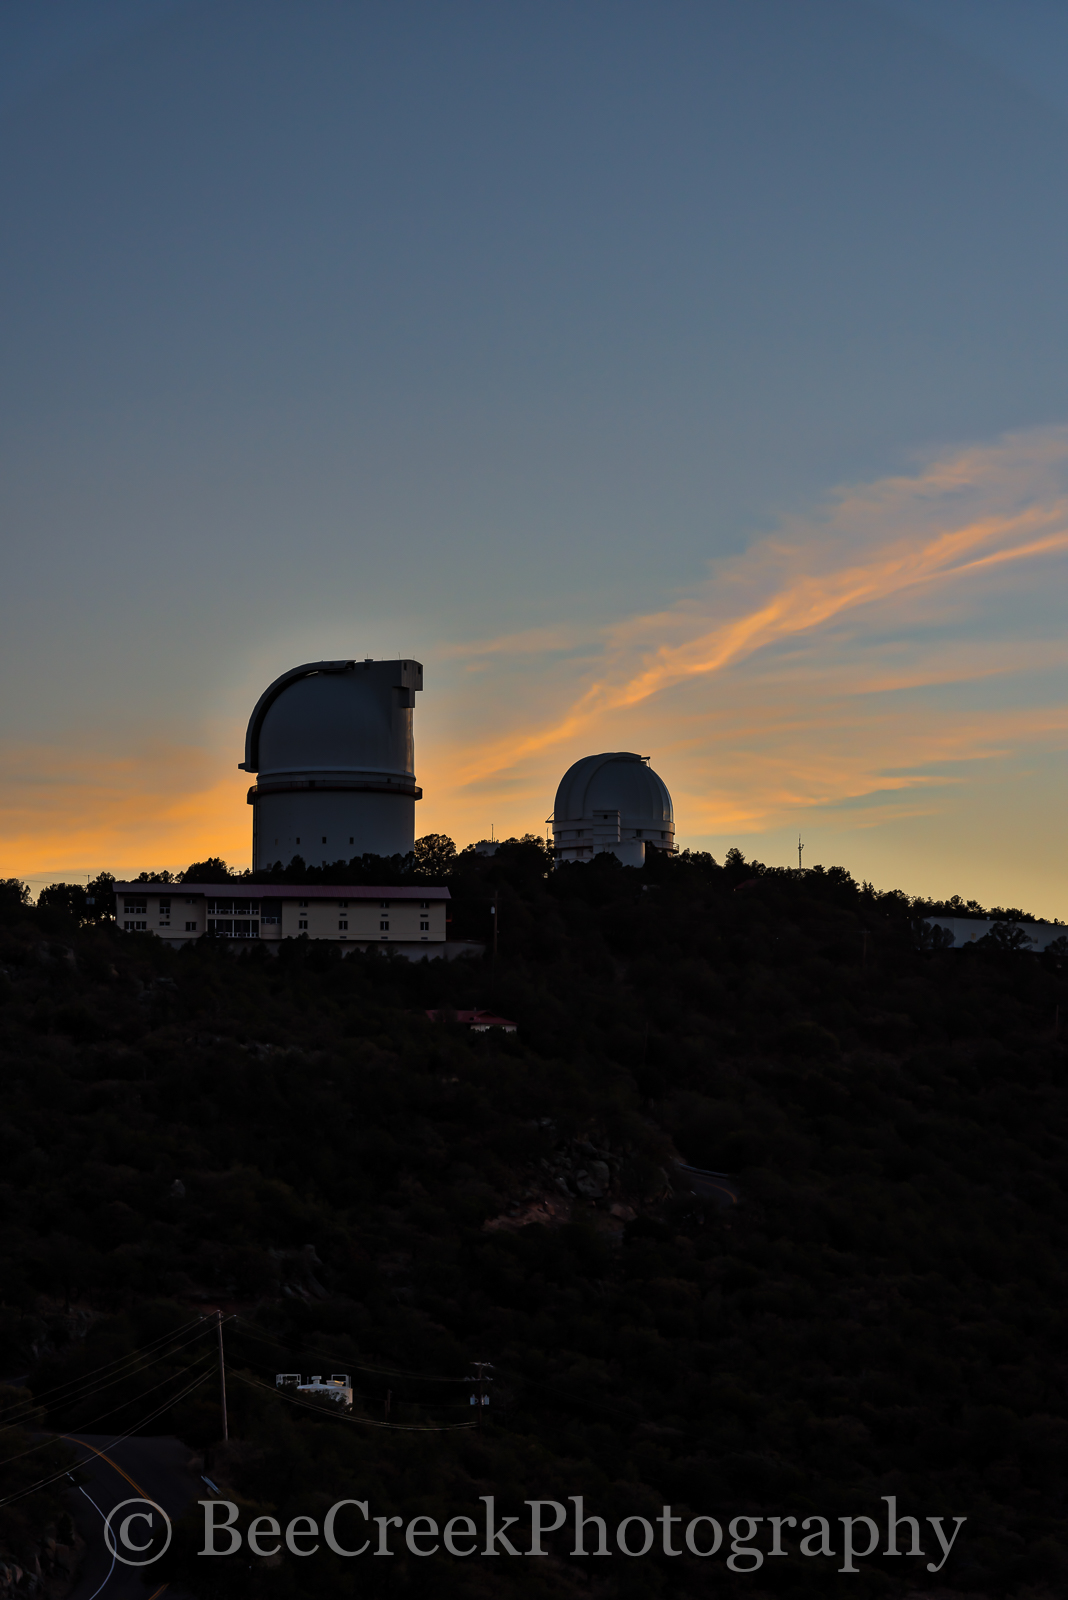 Davis mountains, Fort Davis, McDonald Observatory, colorful, glow, silouette., sunset, west texas